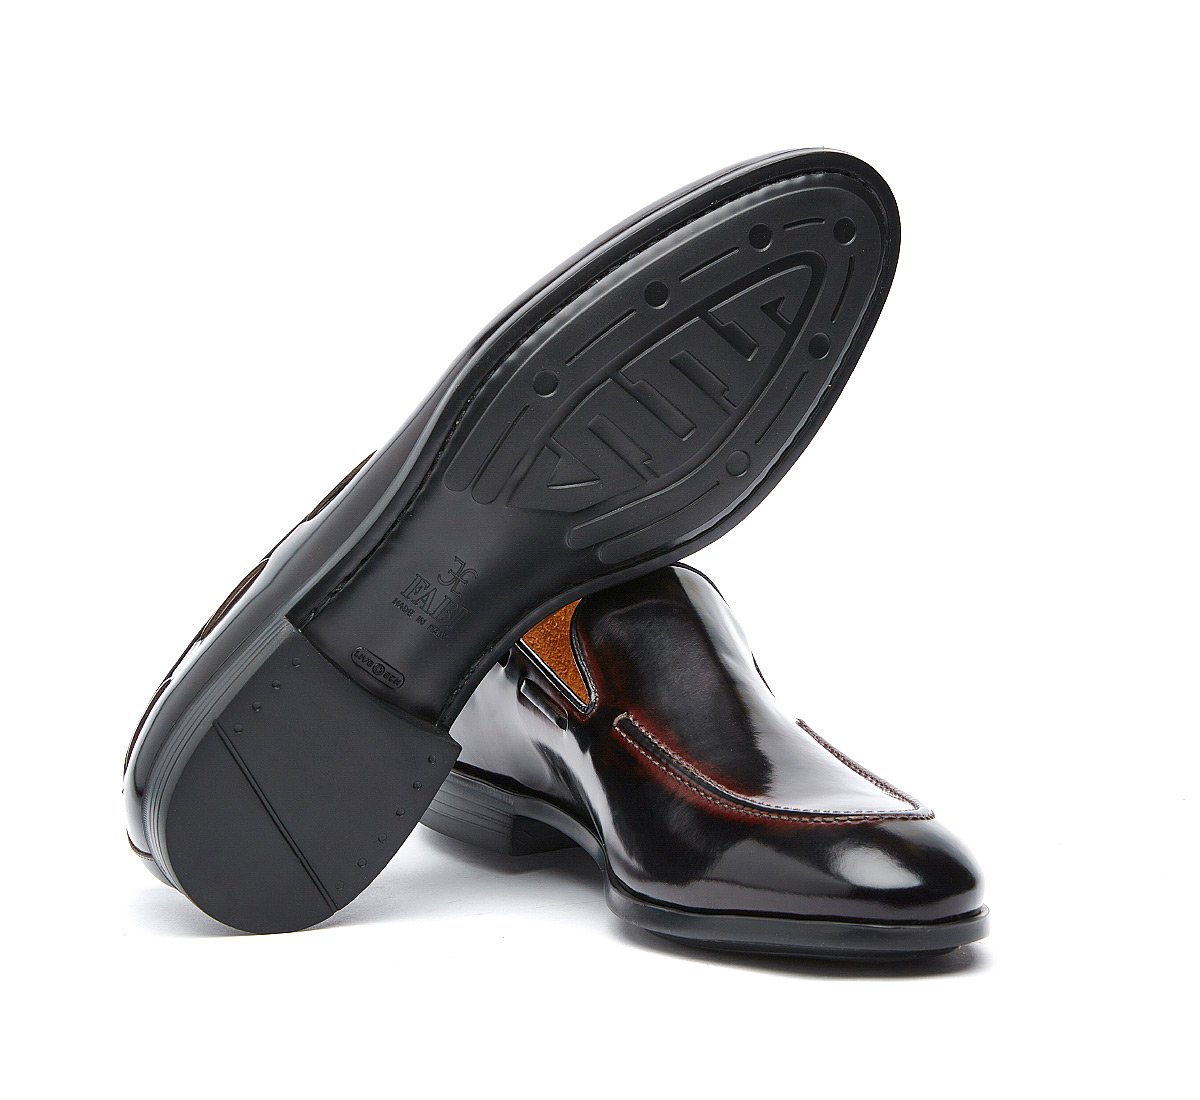 Loafer in calf leather